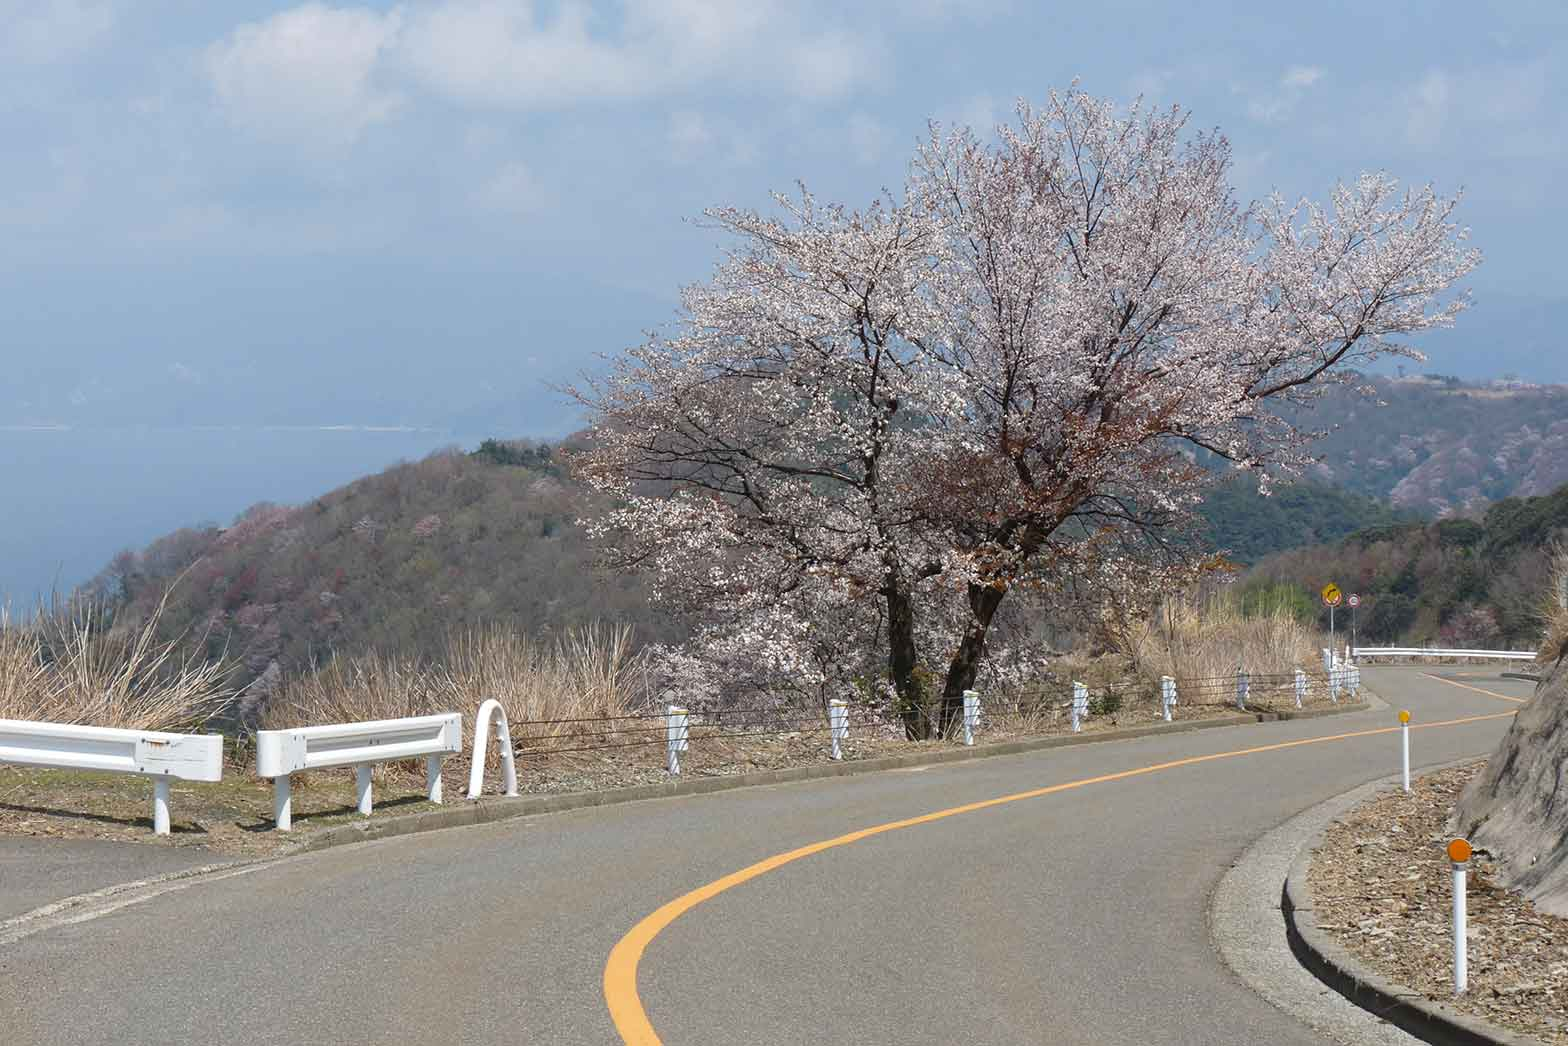 Countryside in Japan